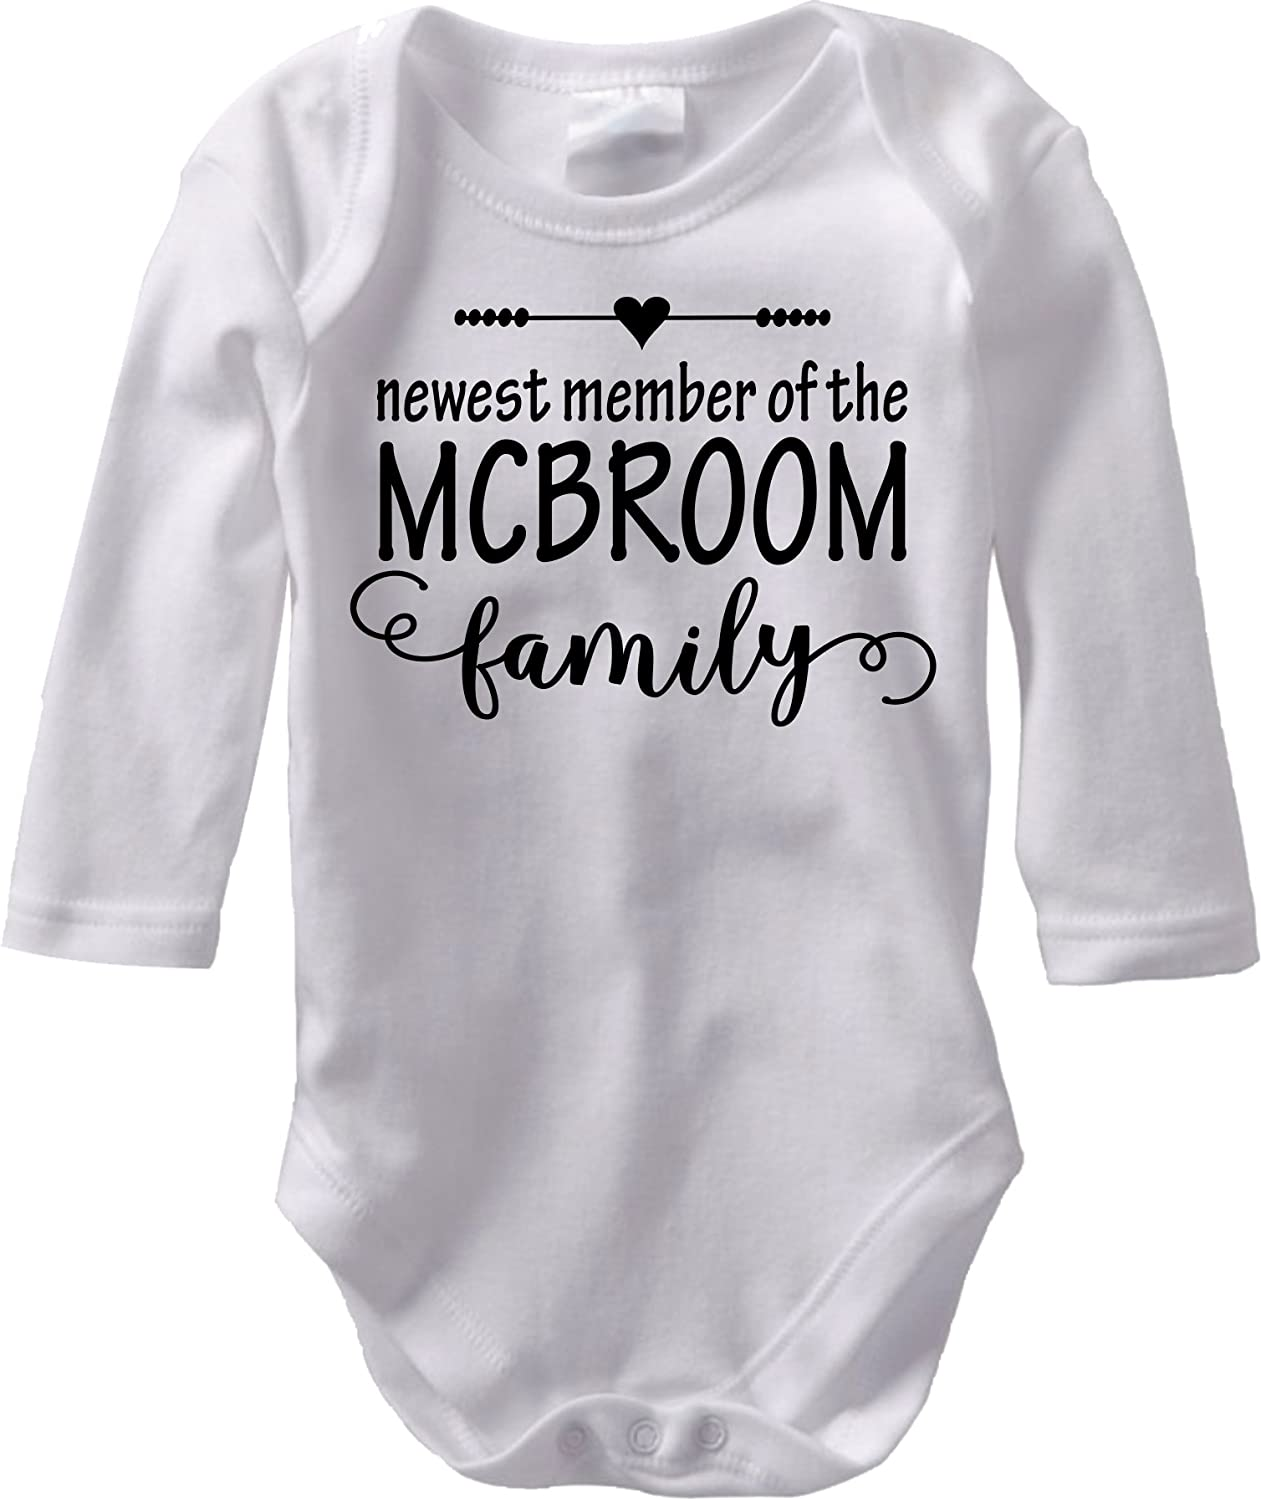 The Newest Member - Custom Baby Name Birth Announcement (Long Sleeve Cotton Bodysuit)